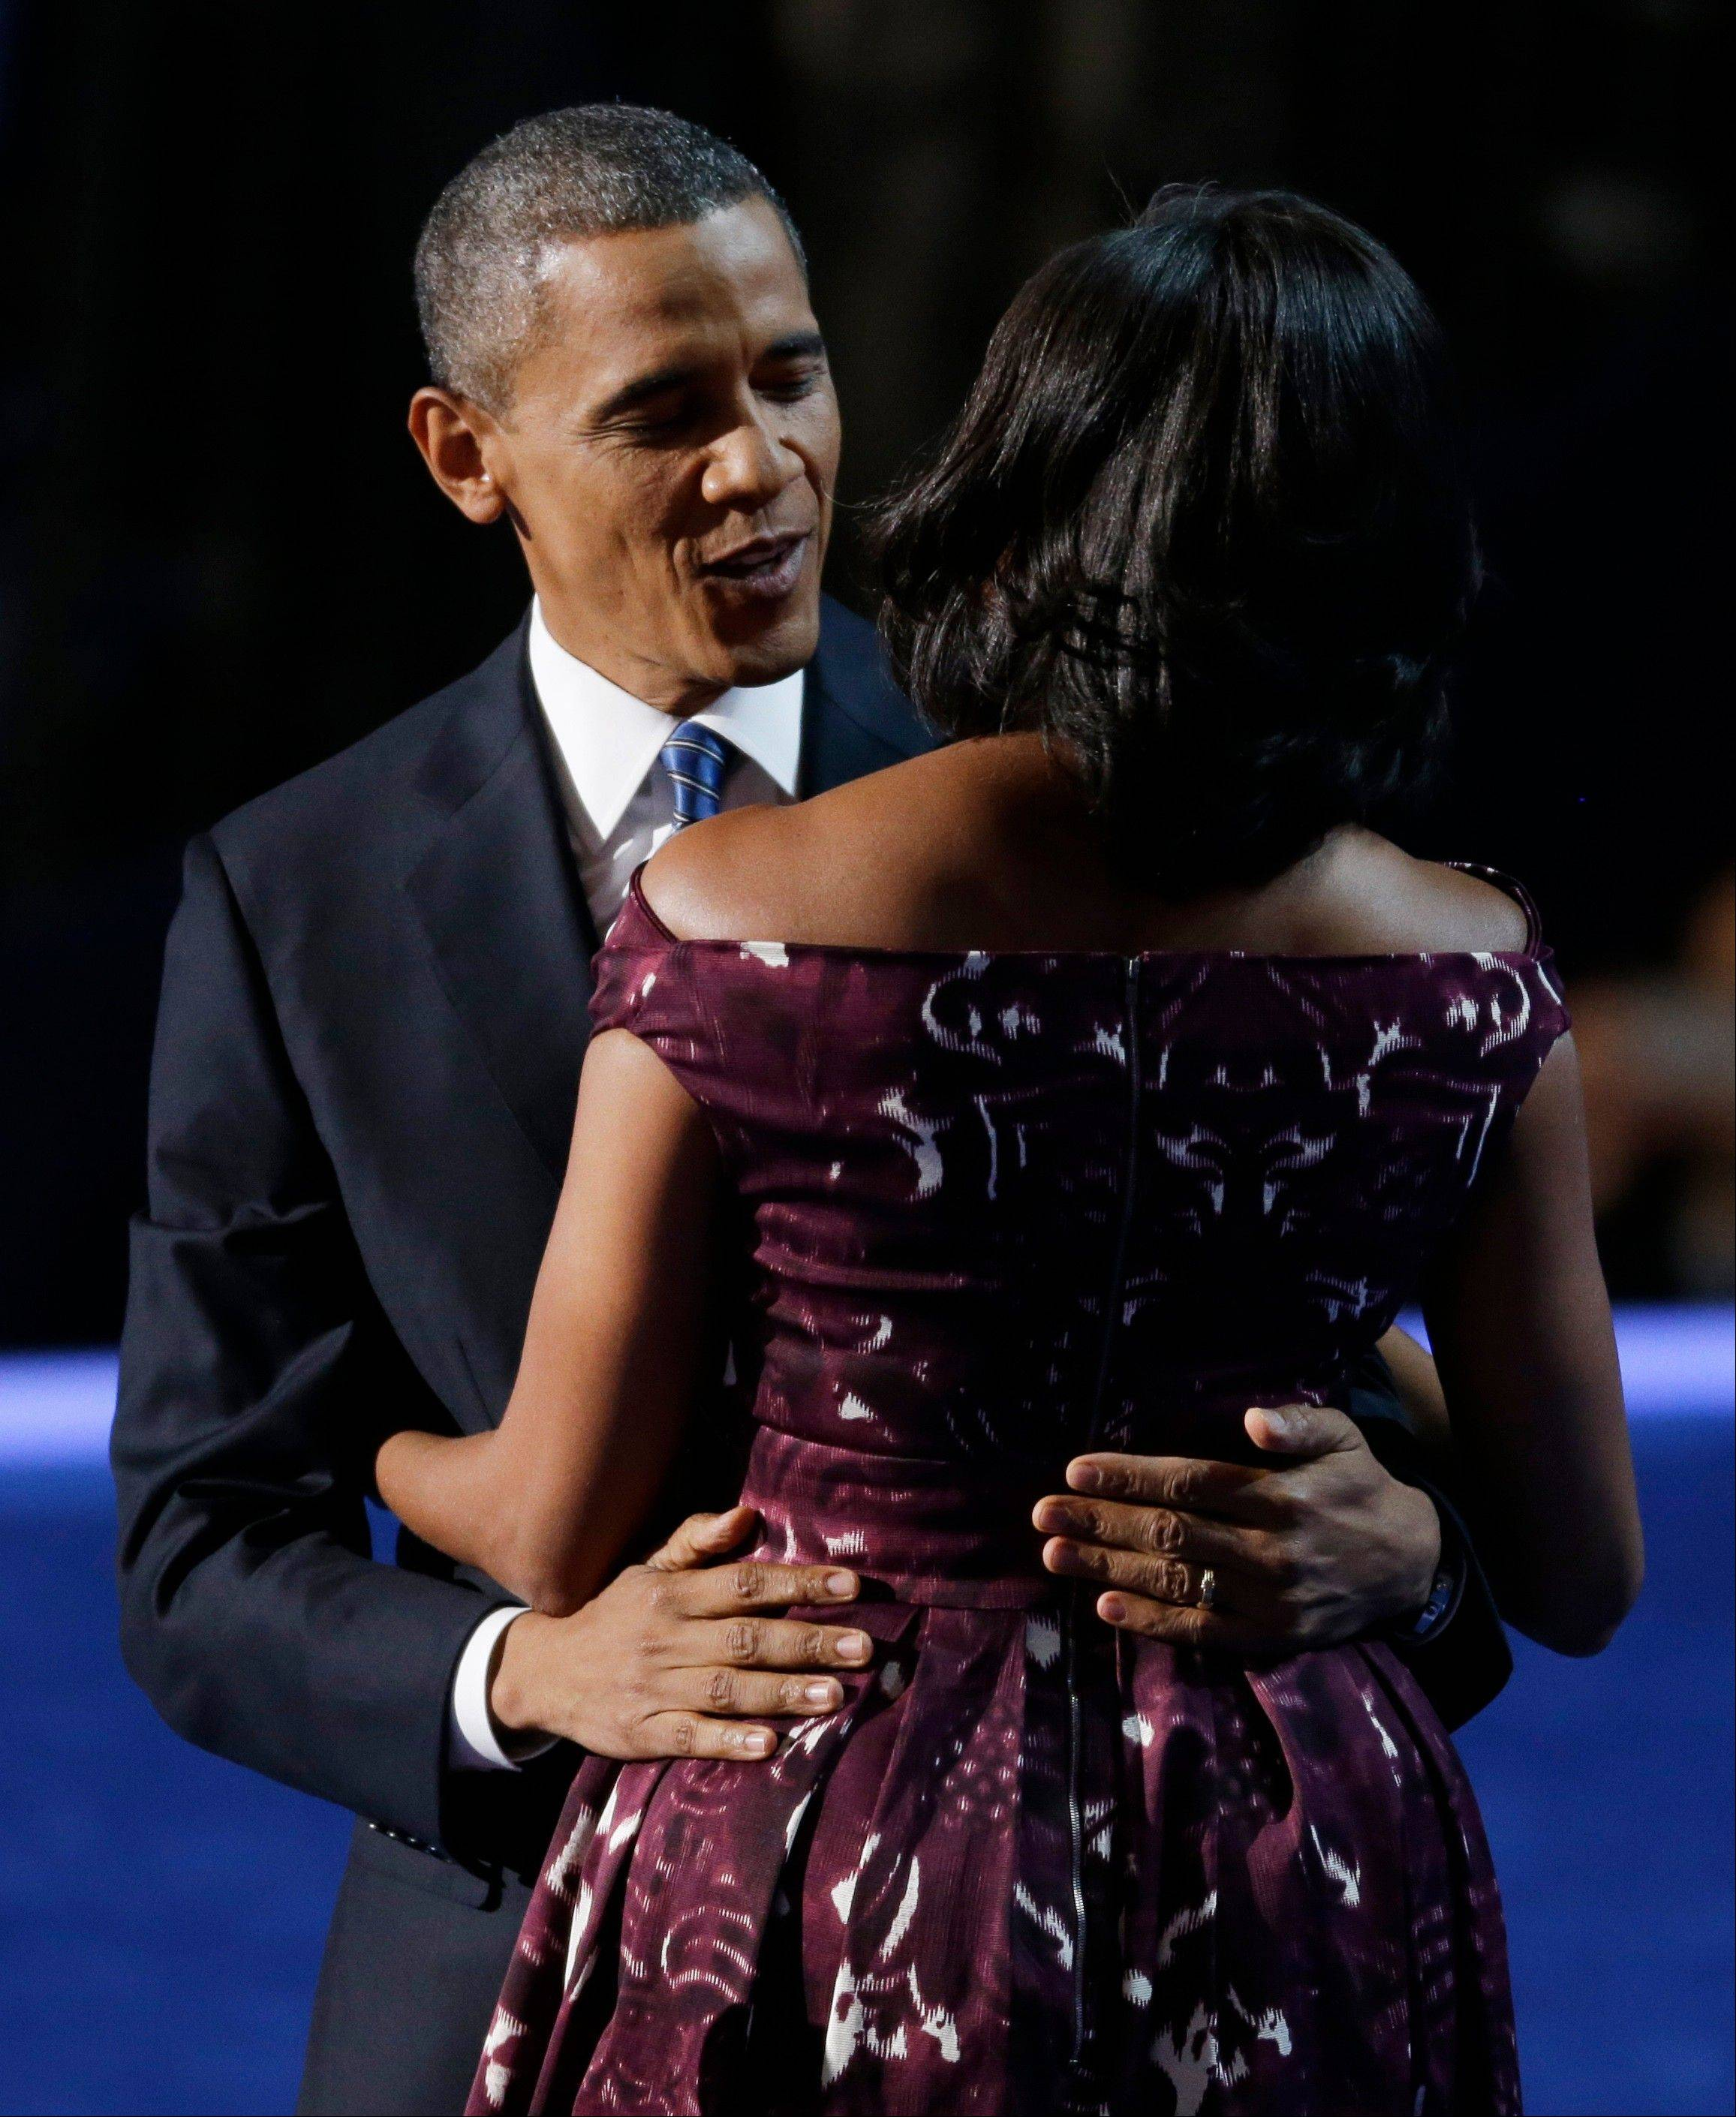 President Barack Obama hugs his wife, first lady Michelle Obama, at the Democratic National Convention in Charlotte, N.C., on Thursday, Sept. 6, 2012.